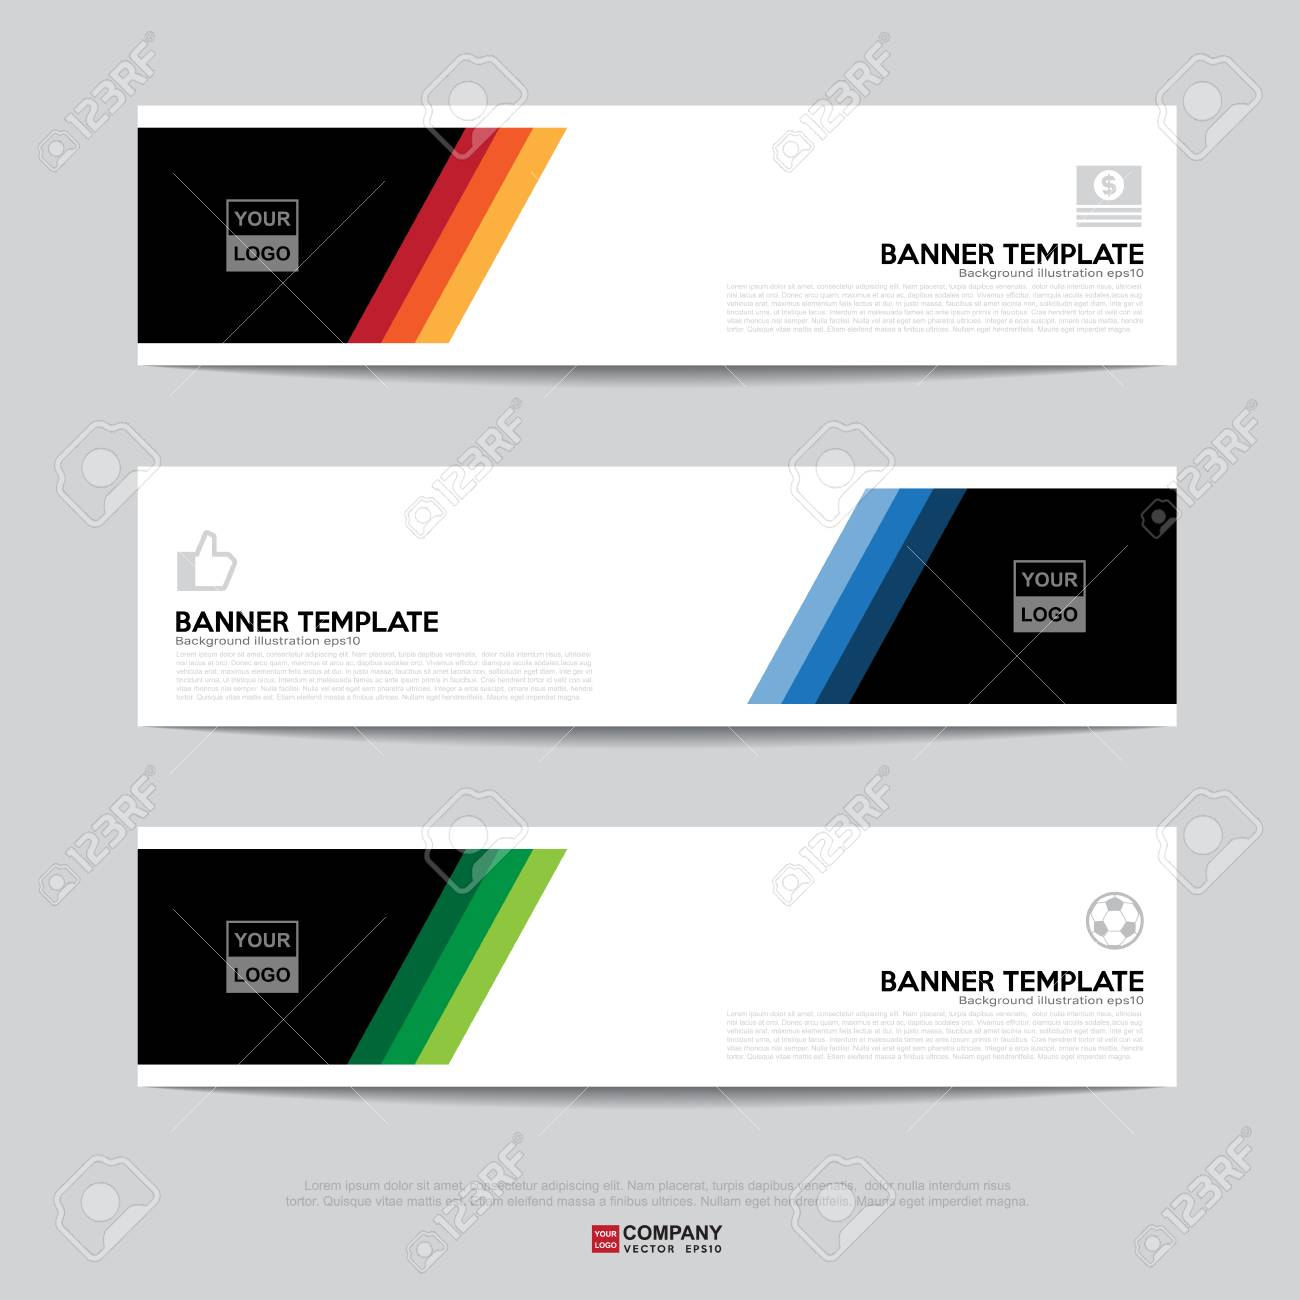 Design Of Flyers Banners Brochures And Cards Templatebanner